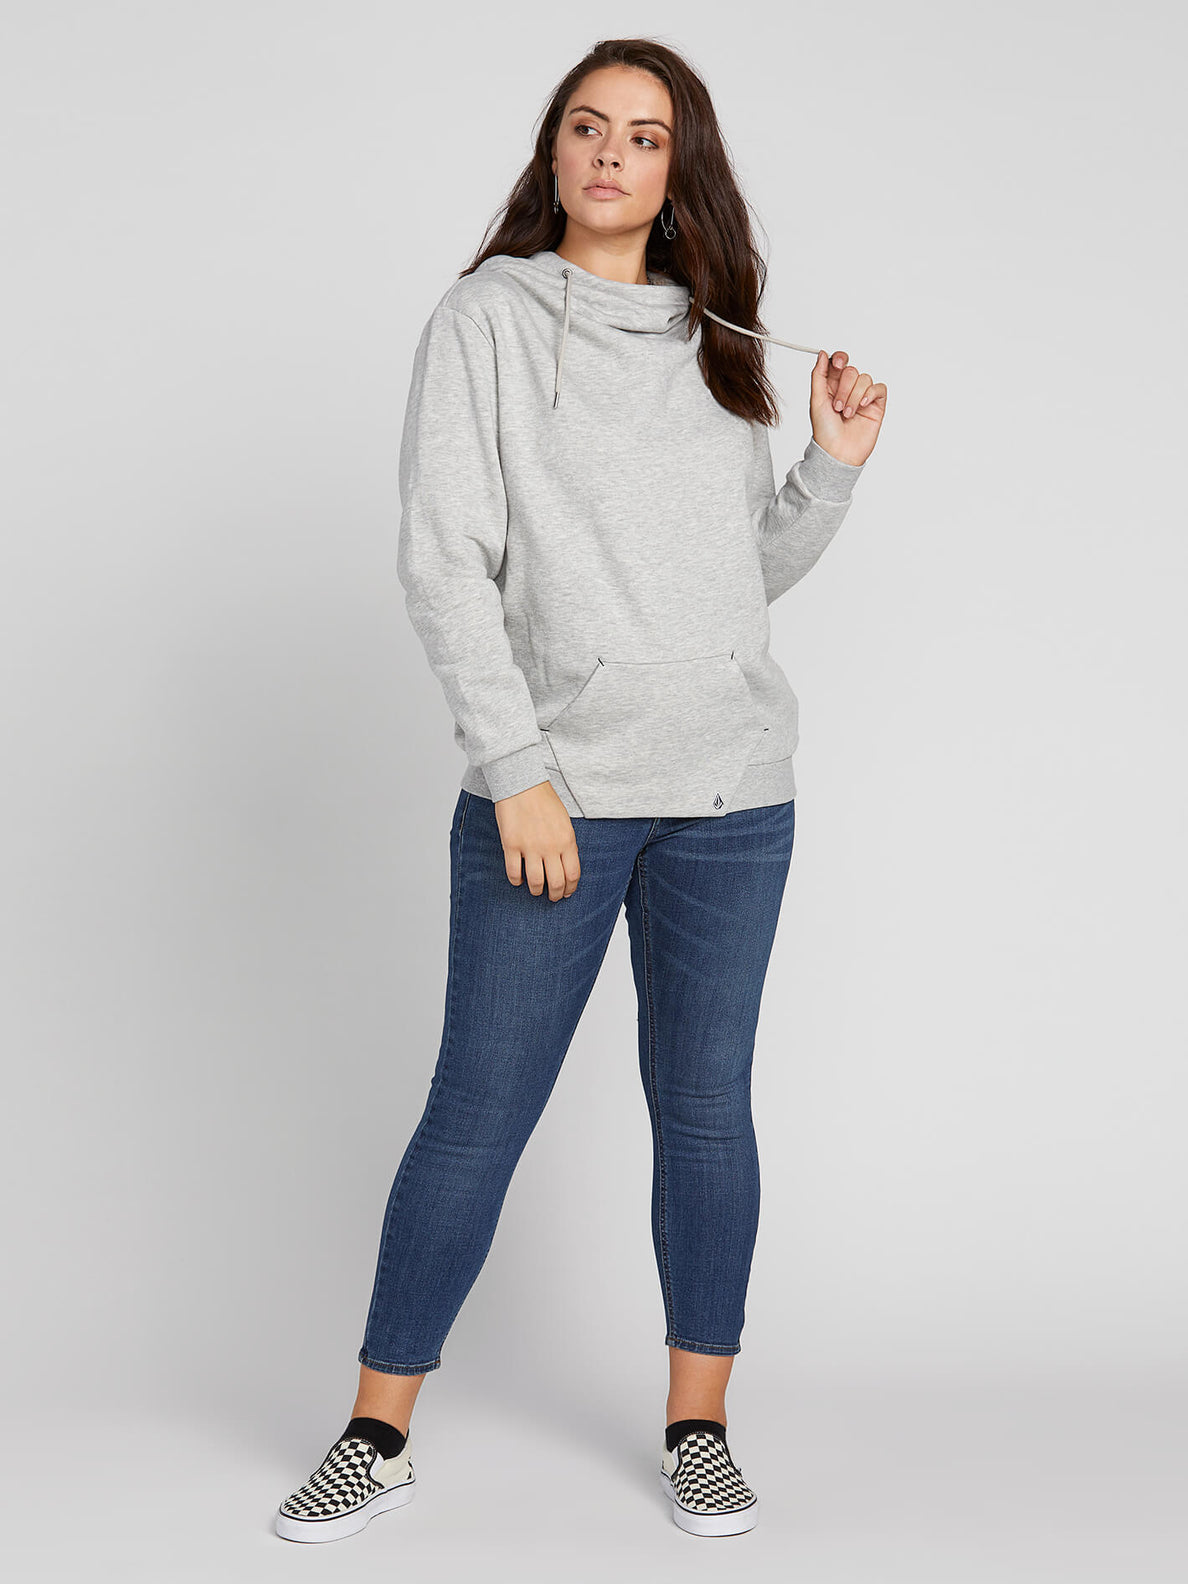 Walk On By High Neck In Heather Grey, Front View